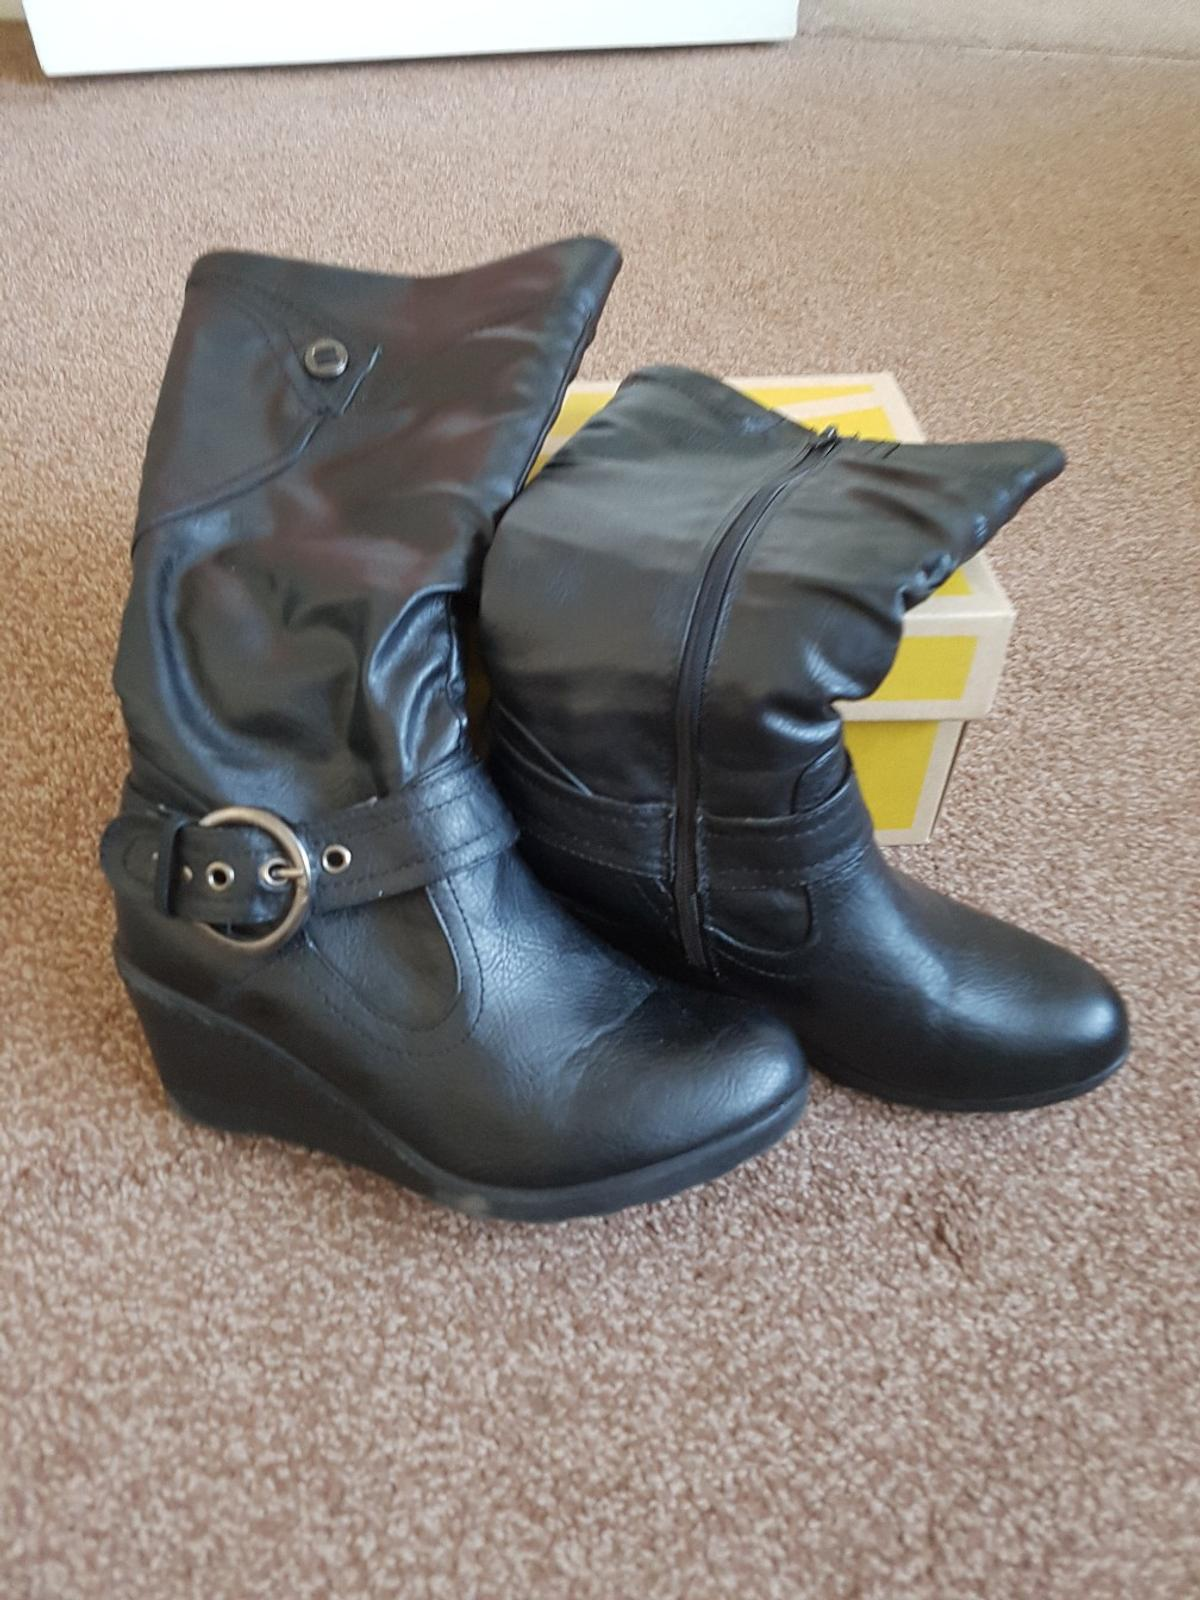 c6d05704e337 Girls Boots size 3-4 in London Borough of Havering for £5.00 for ...